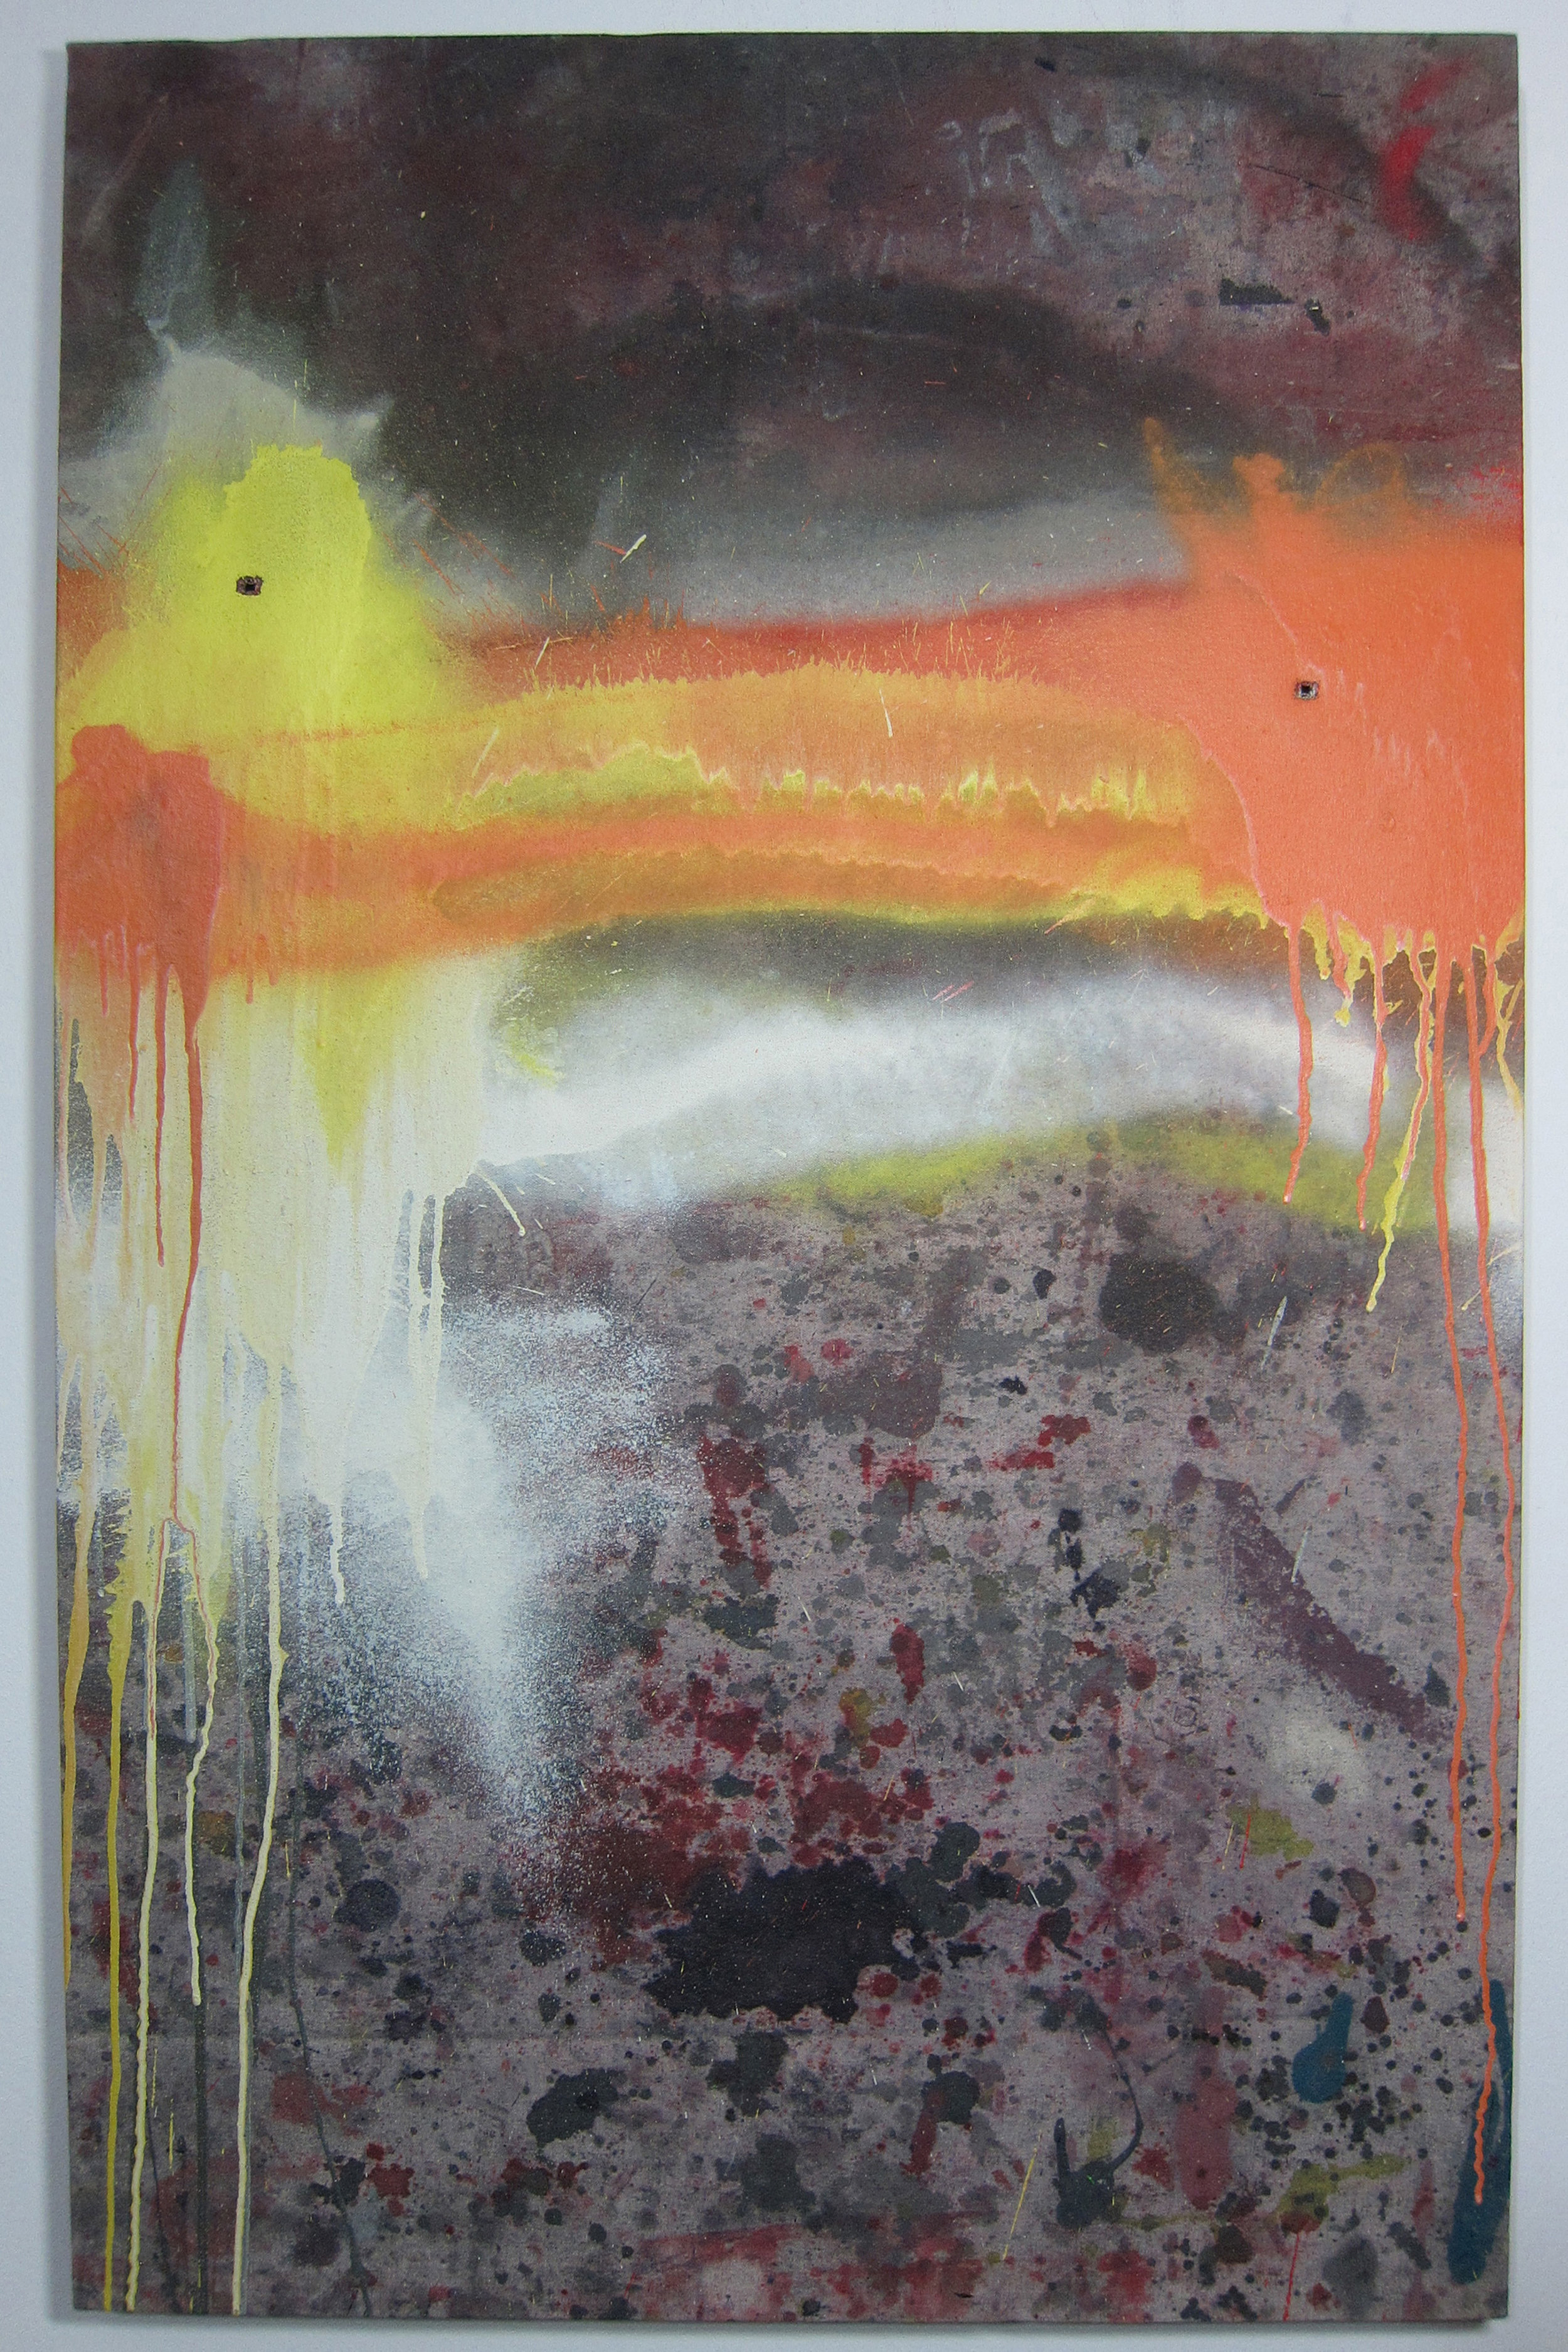 Dysfunctional Dialect.   Oil, alkyd resin, ink, water colour, rain,canvas and shot twice with a Marlin Underlever .38 rifle.  110 x 70 cm.  2015.